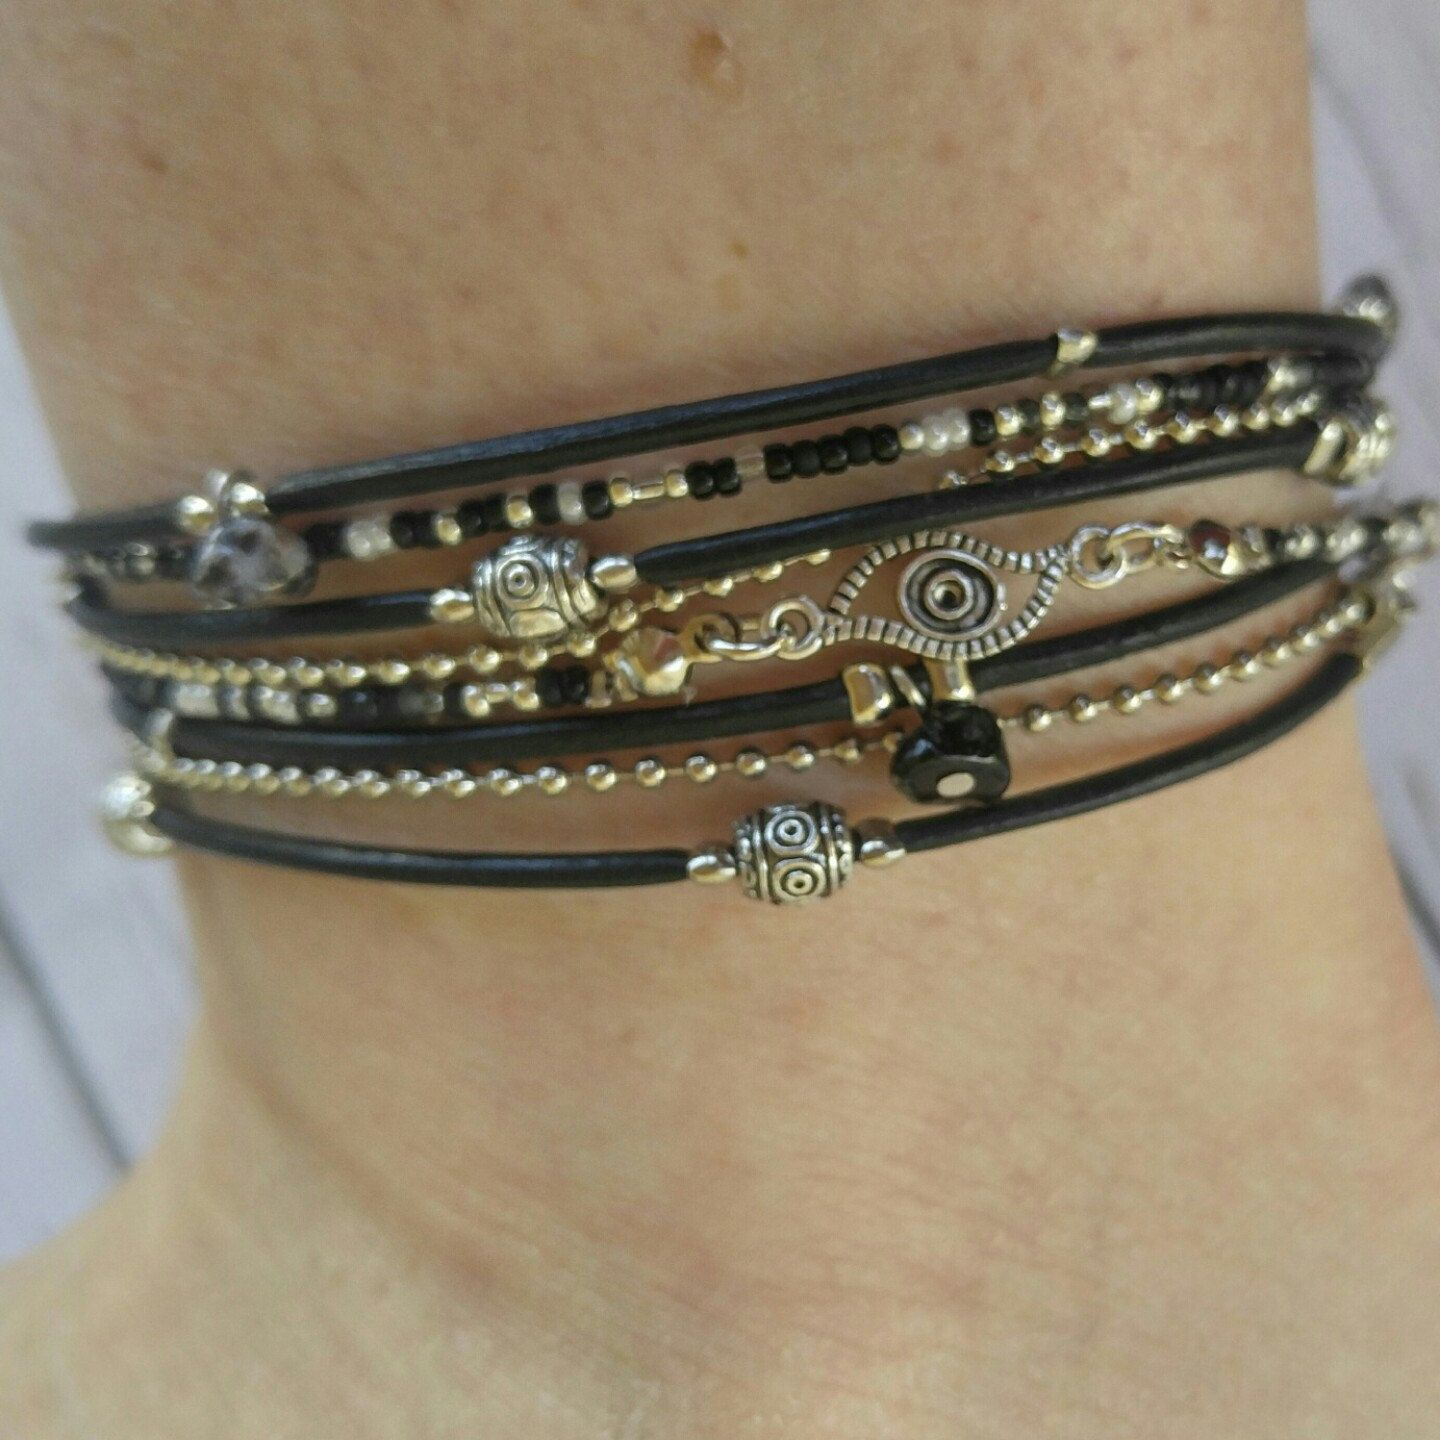 leather anklet bracelet the original ankle bracelets products scandalous faux photogrid on storenvy